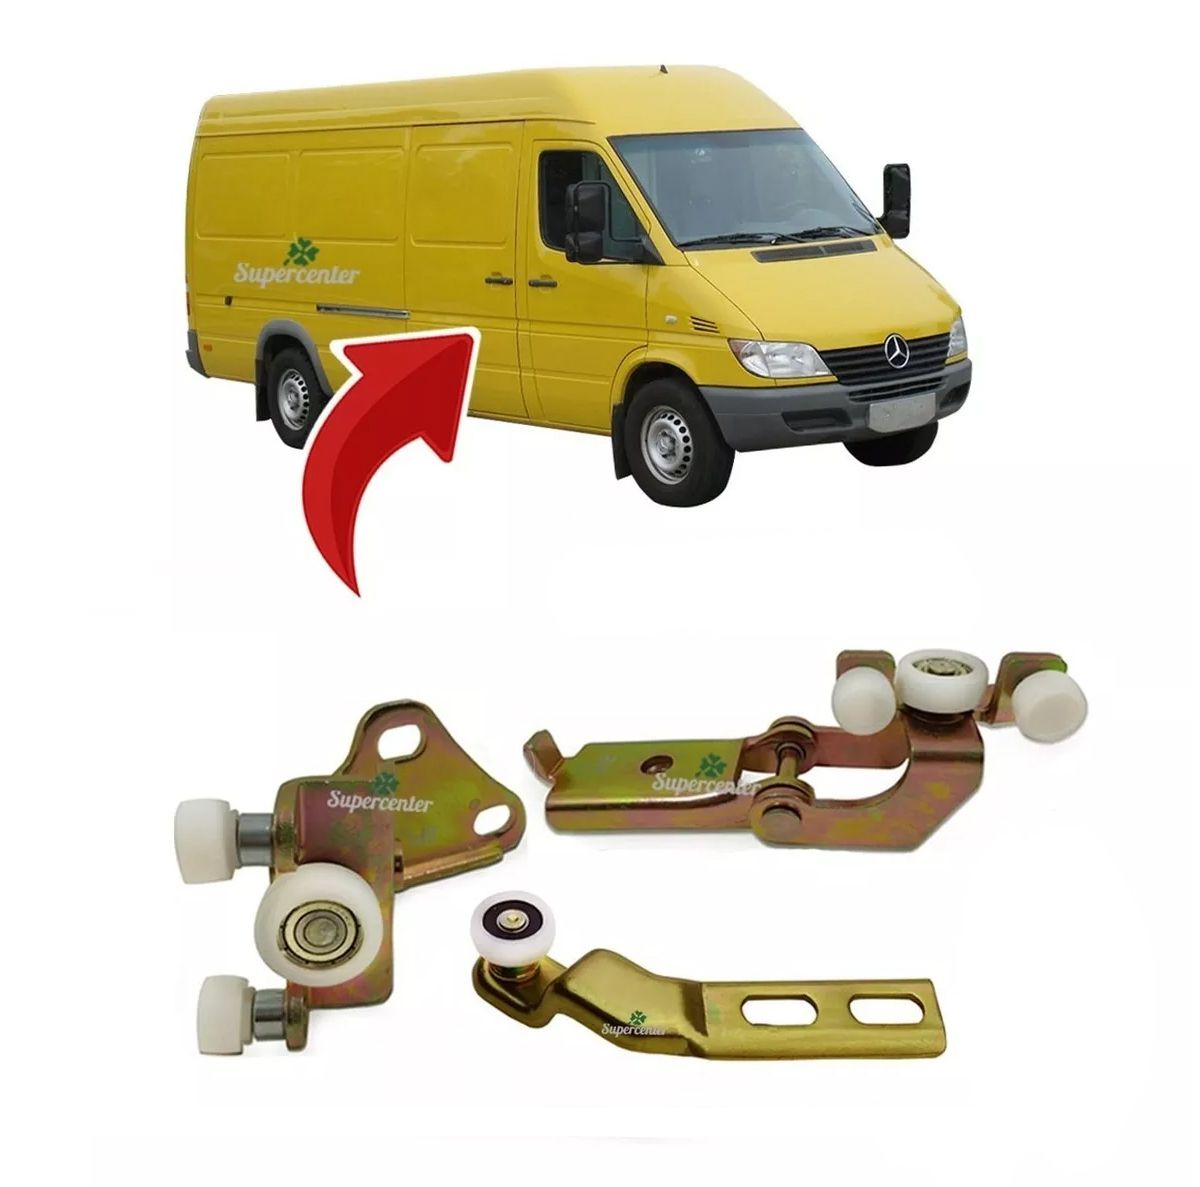 Kit Guia Central Sup Inf Porta Lateral Correr Sprinter 97/11